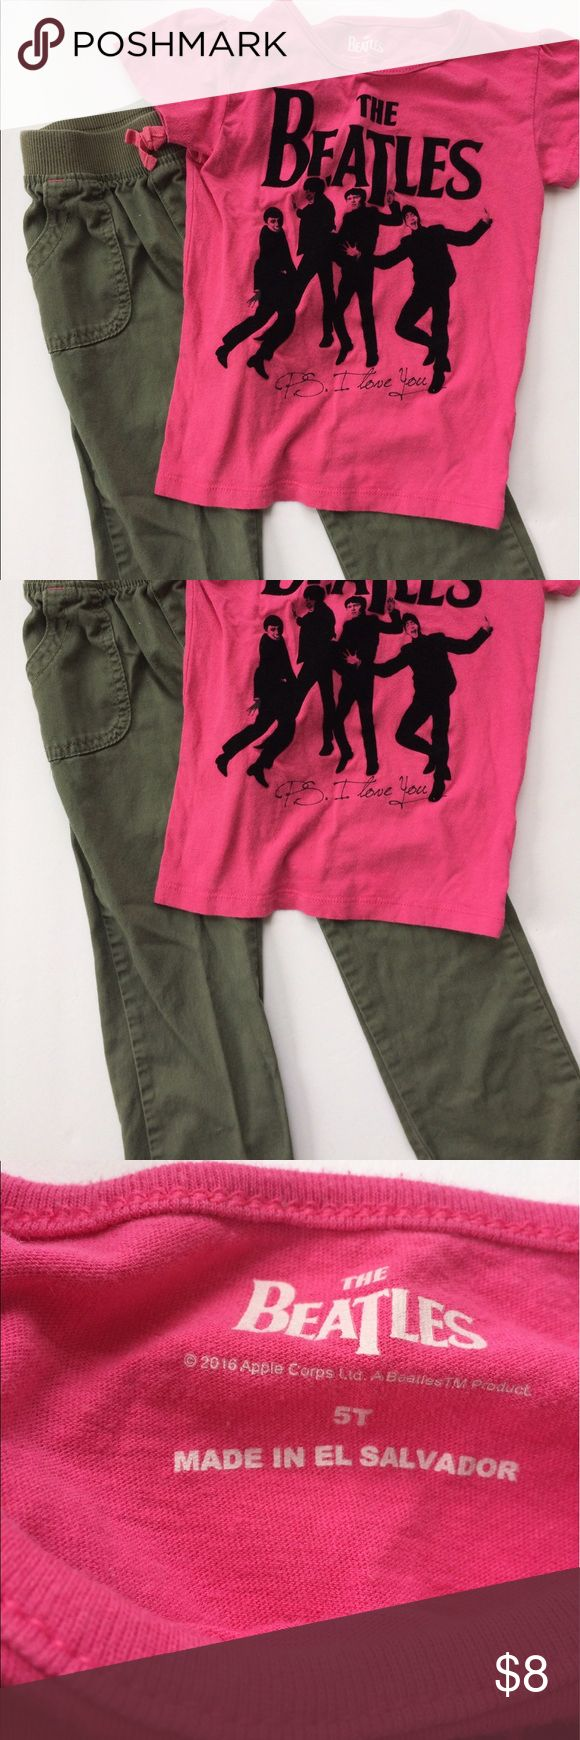 Girls Beatles outfit Beatles tee shirt and olive green khakis. Both 5t. Check out my other listings for a custom bundle! Shirts & Tops Tees - Short Sleeve